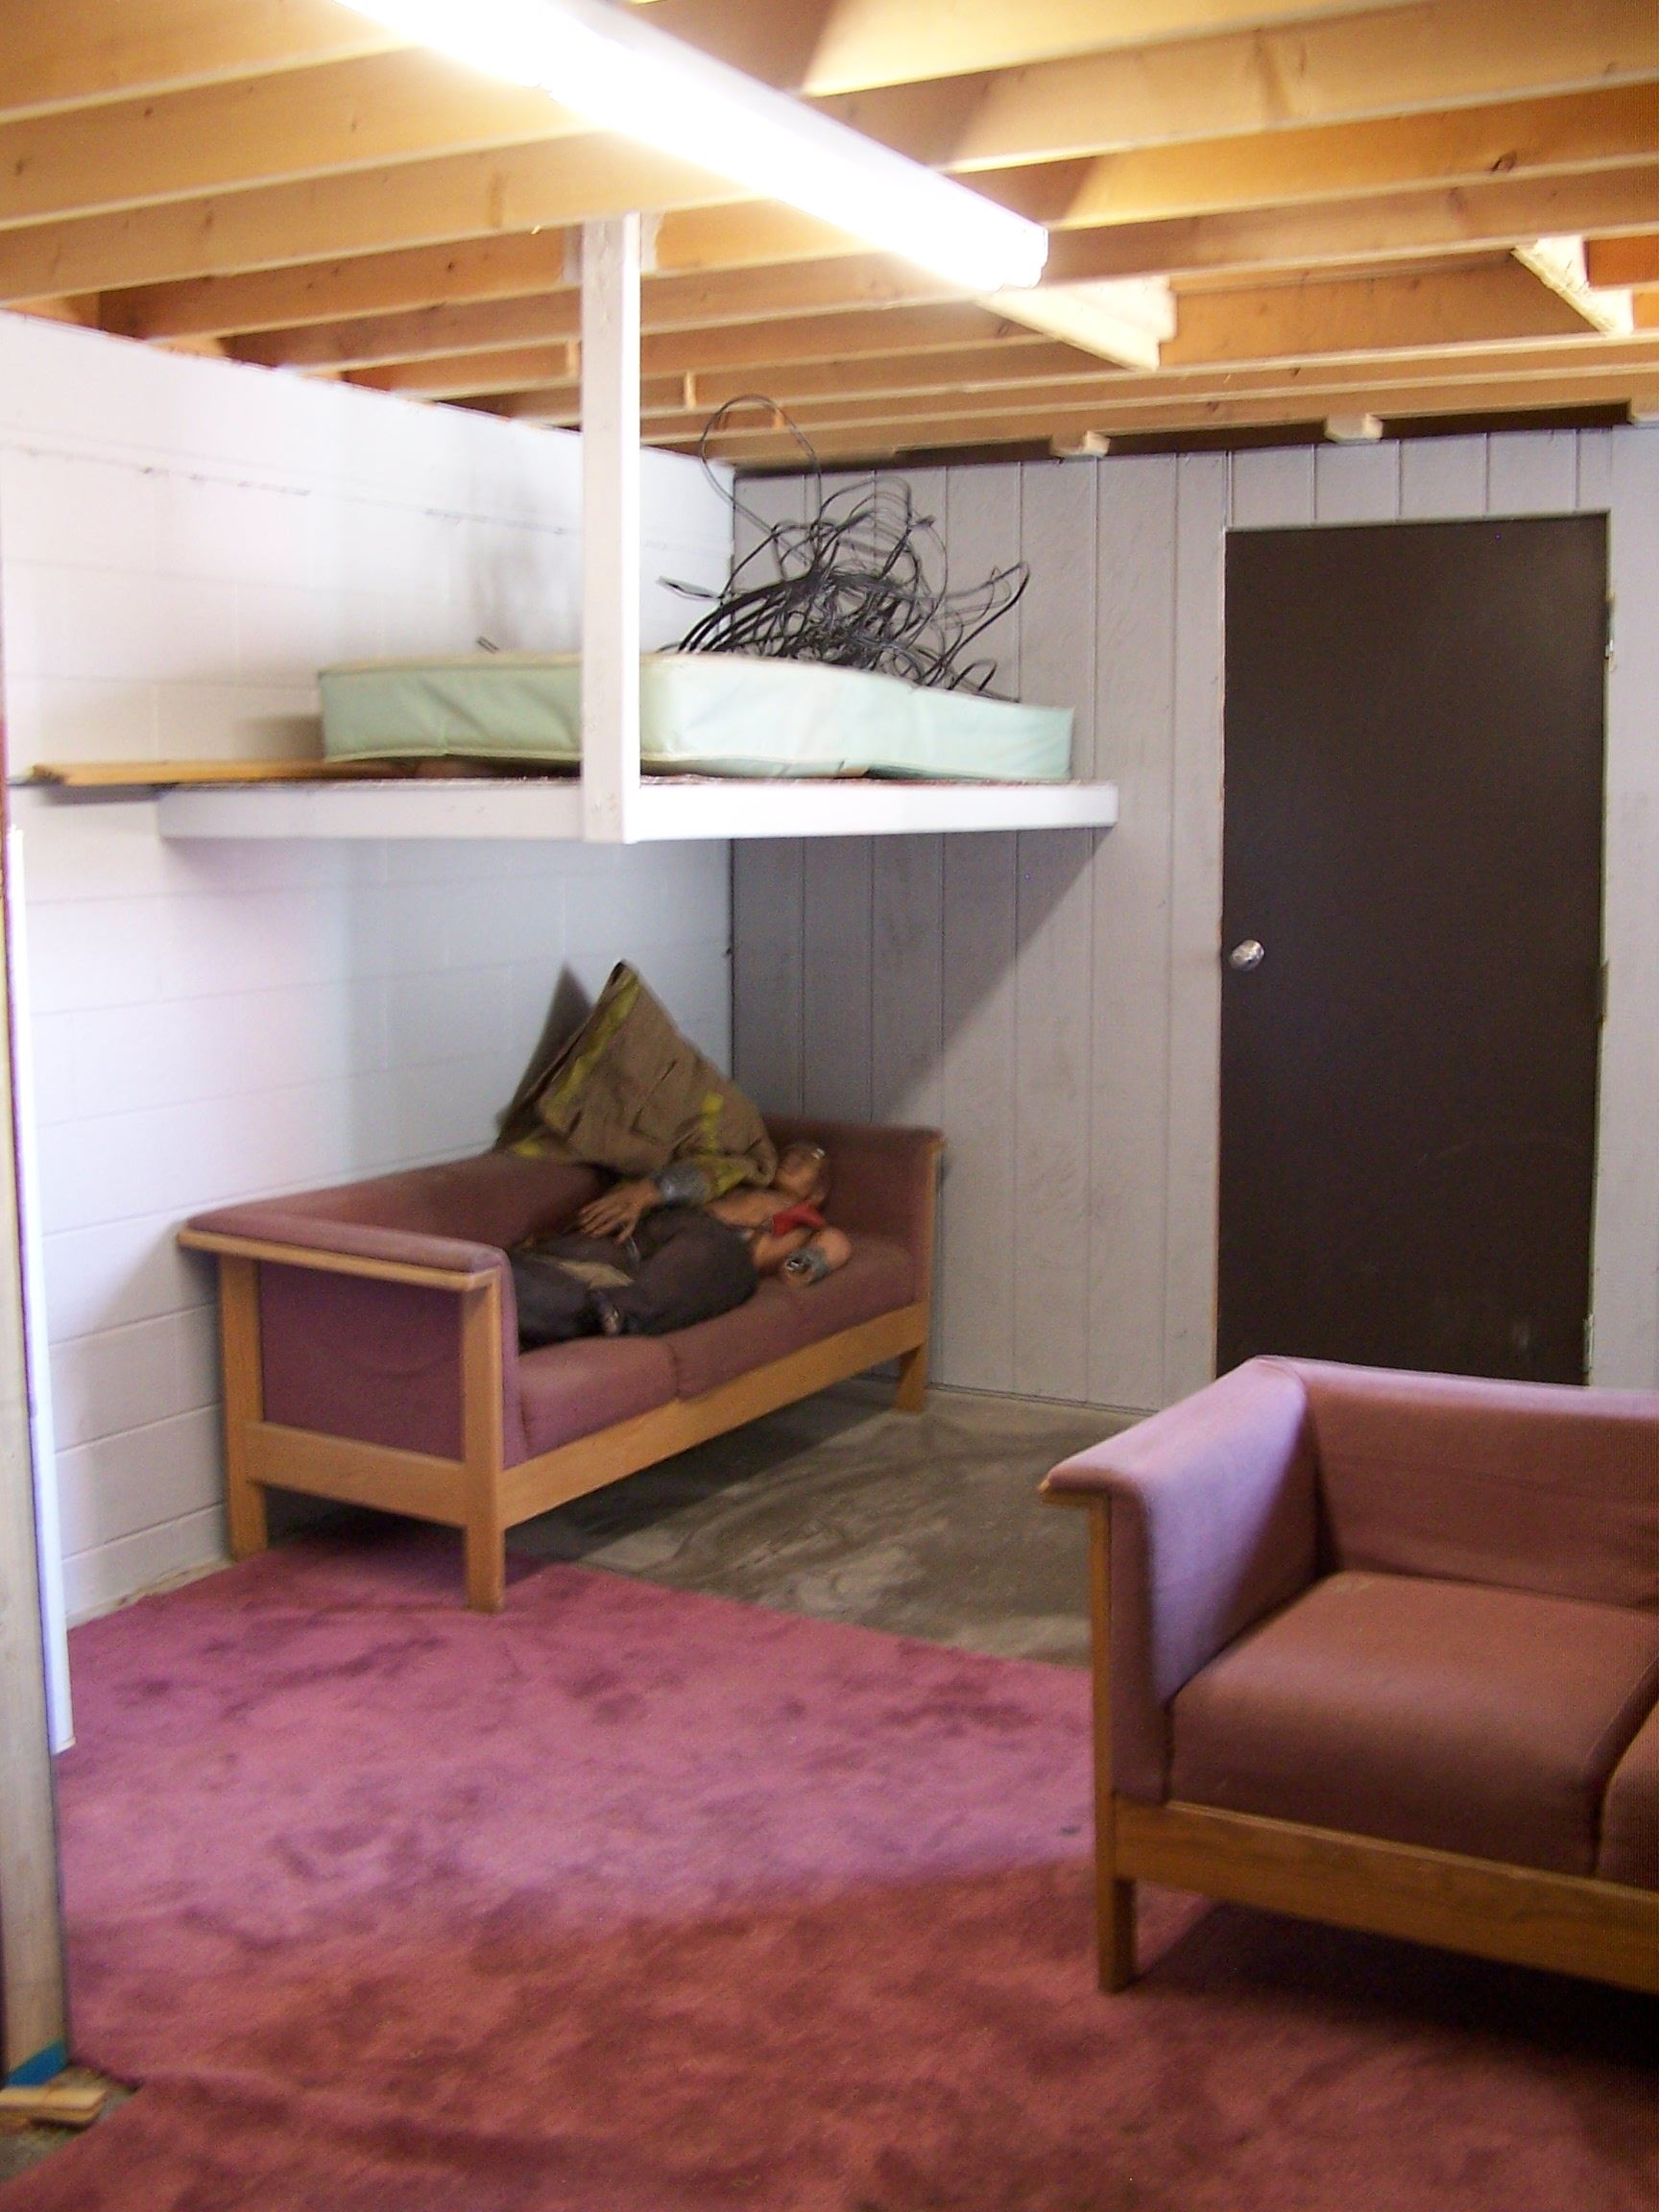 A dorm room mock-up with a couch that has a dummy laying on it and a shelf for a cot.